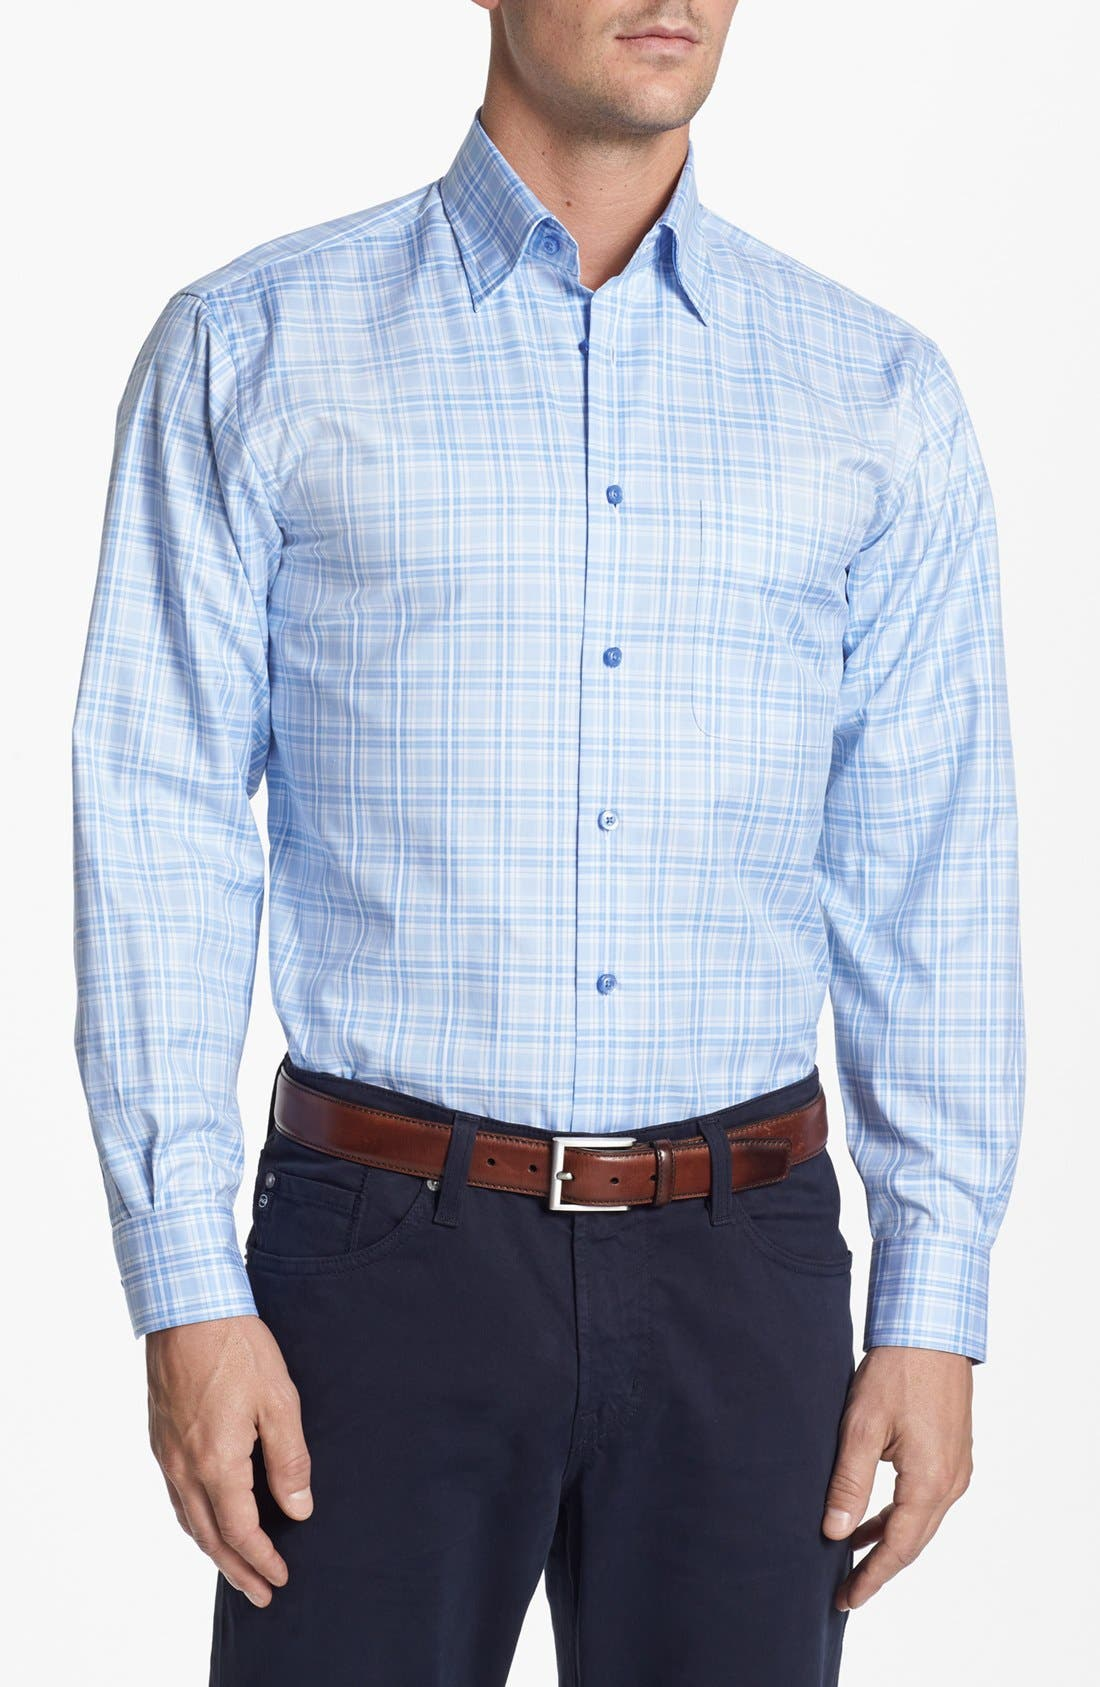 Alternate Image 1 Selected - Robert Talbott Sport Shirt